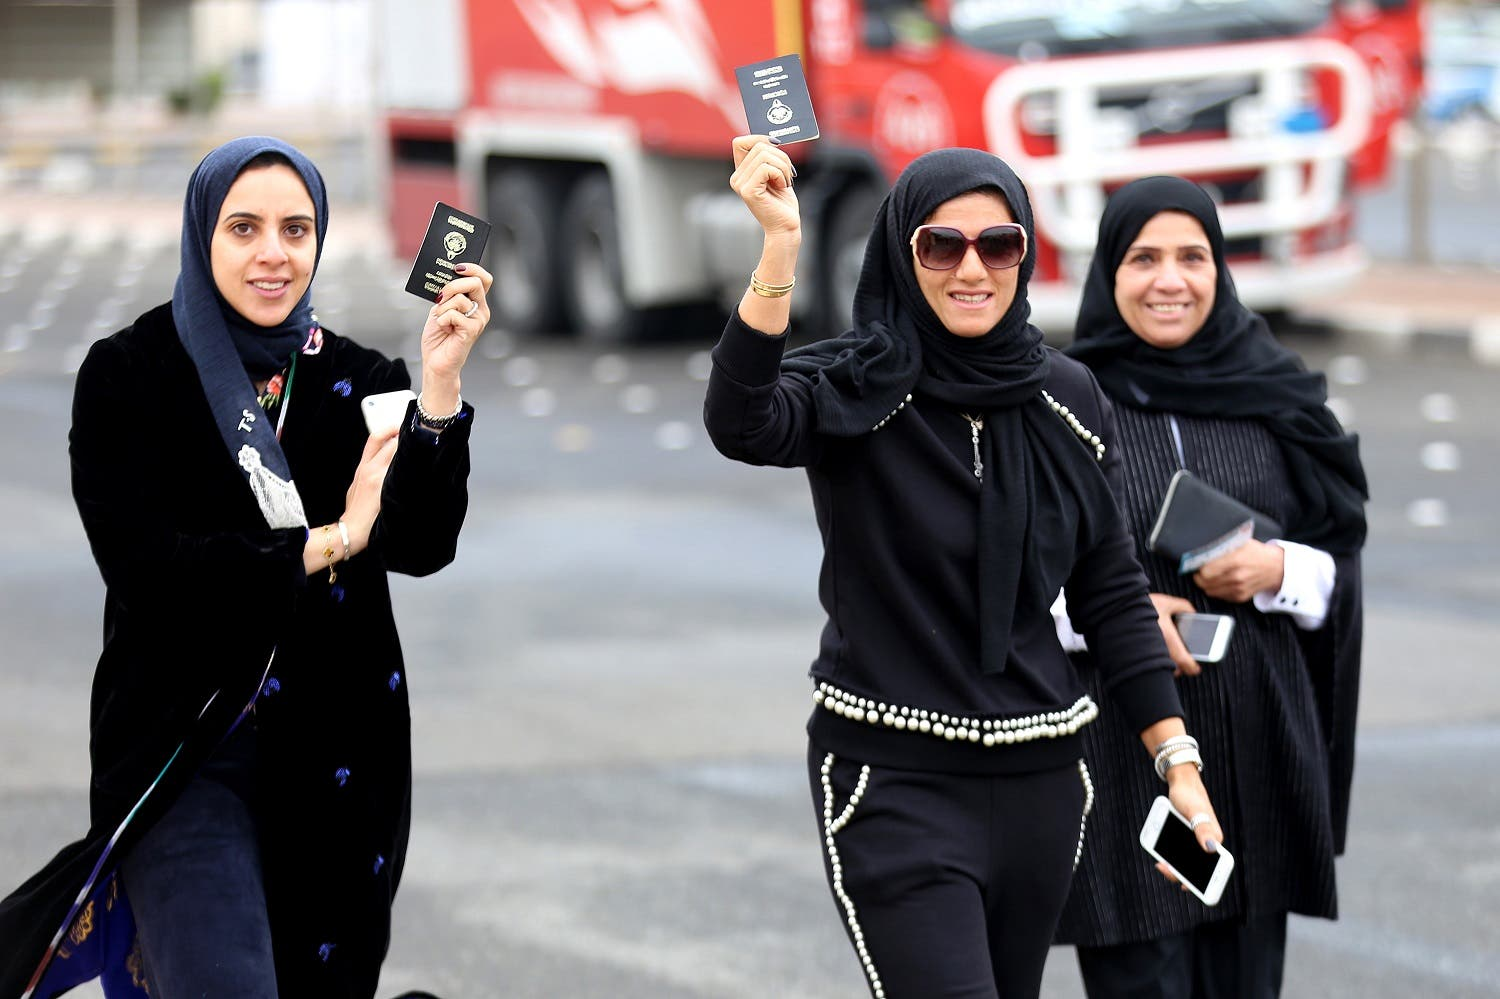 Kuwaiti women flash their passports as they arrive to cast their votes at a polling station in Kuwait City. (AFP)